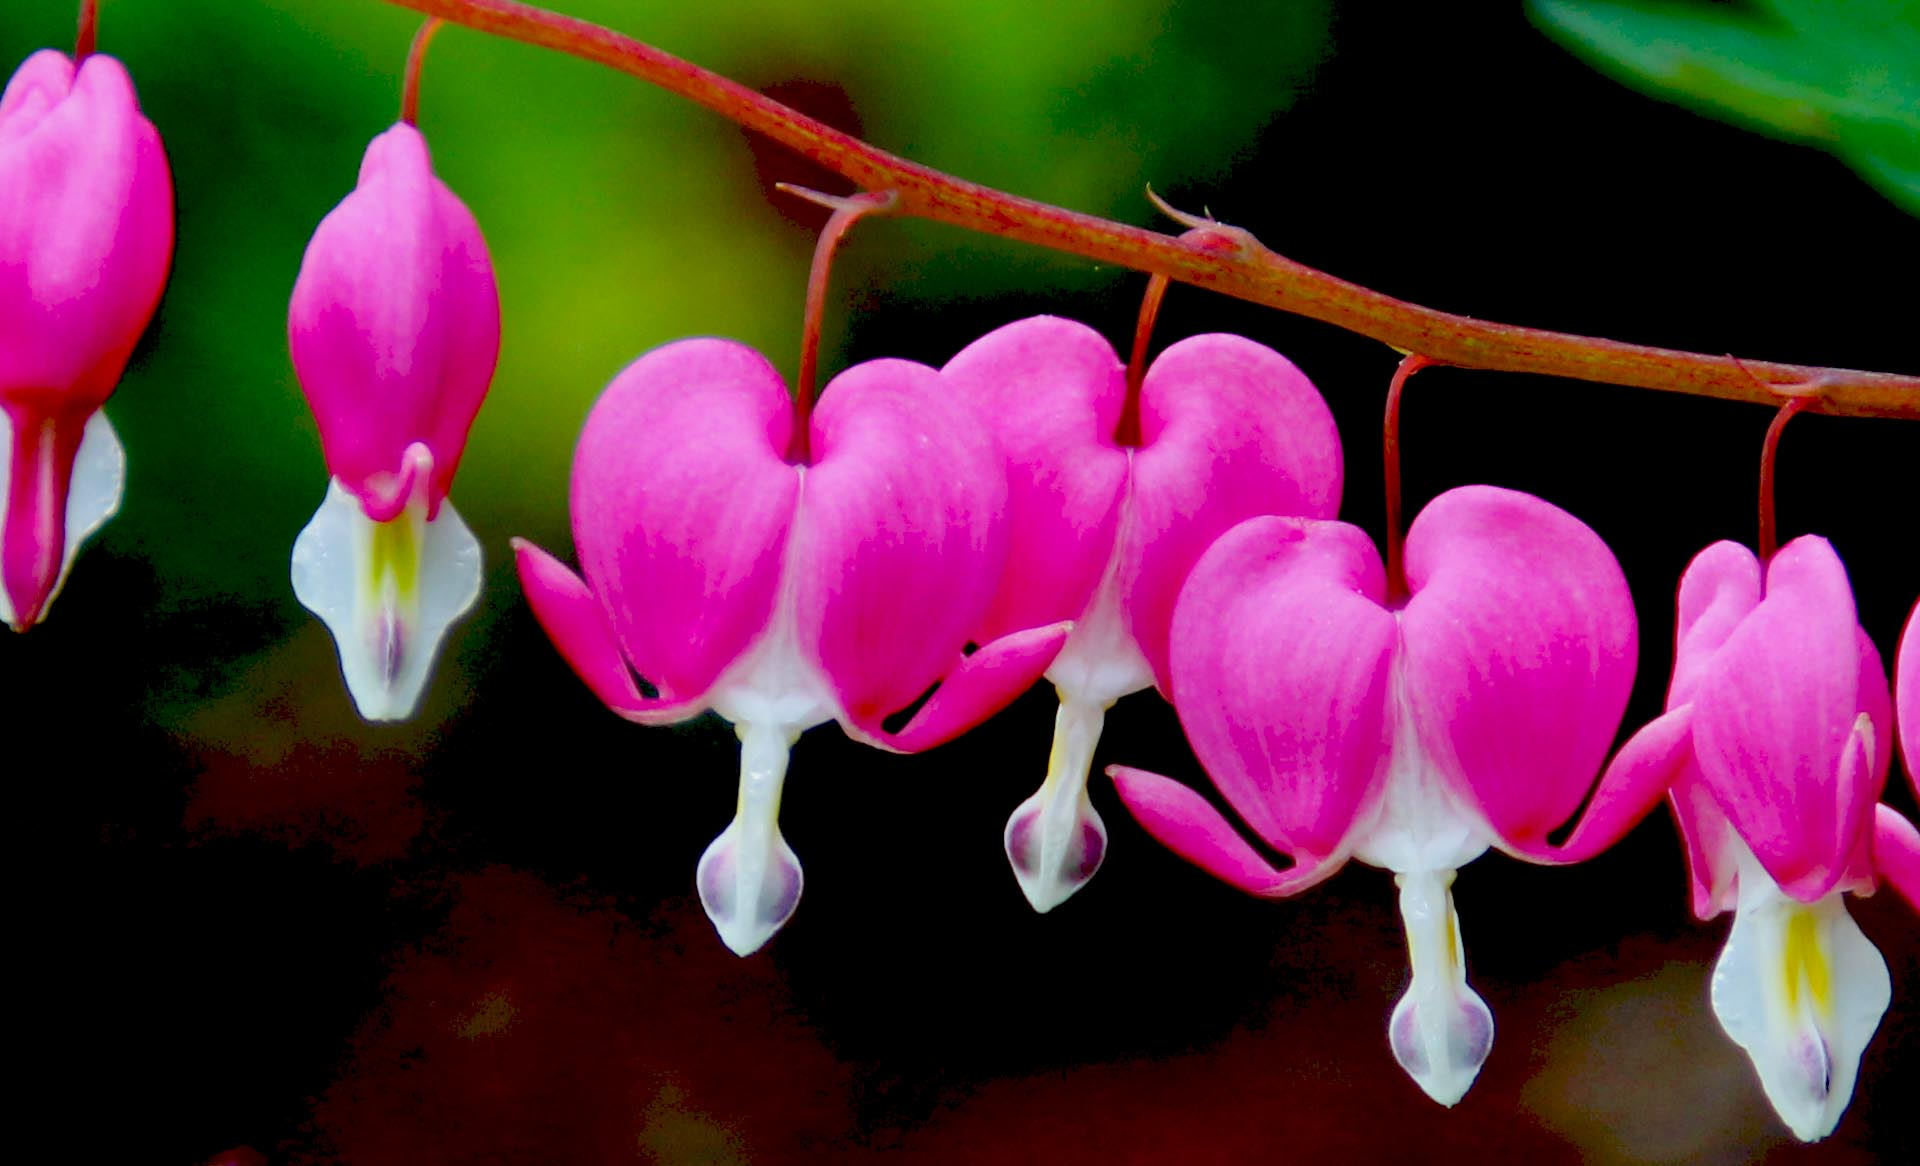 Bleeding Heart – A Pretty Flower in the Heart